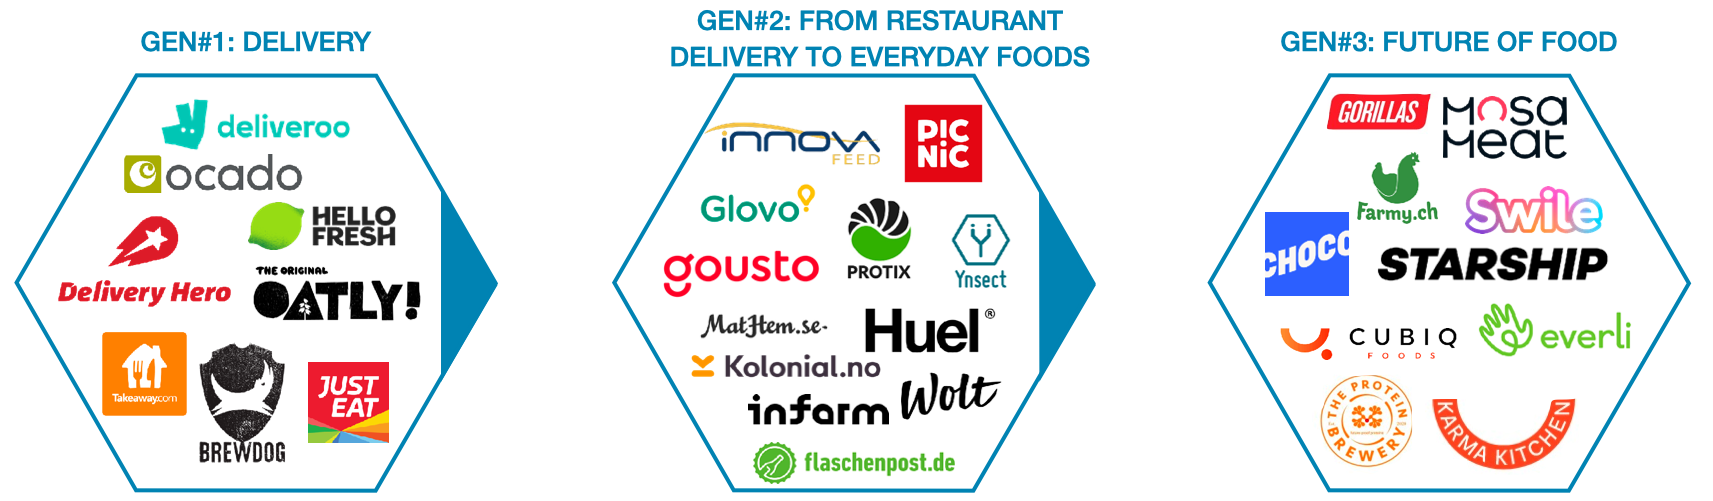 foodtech-generations